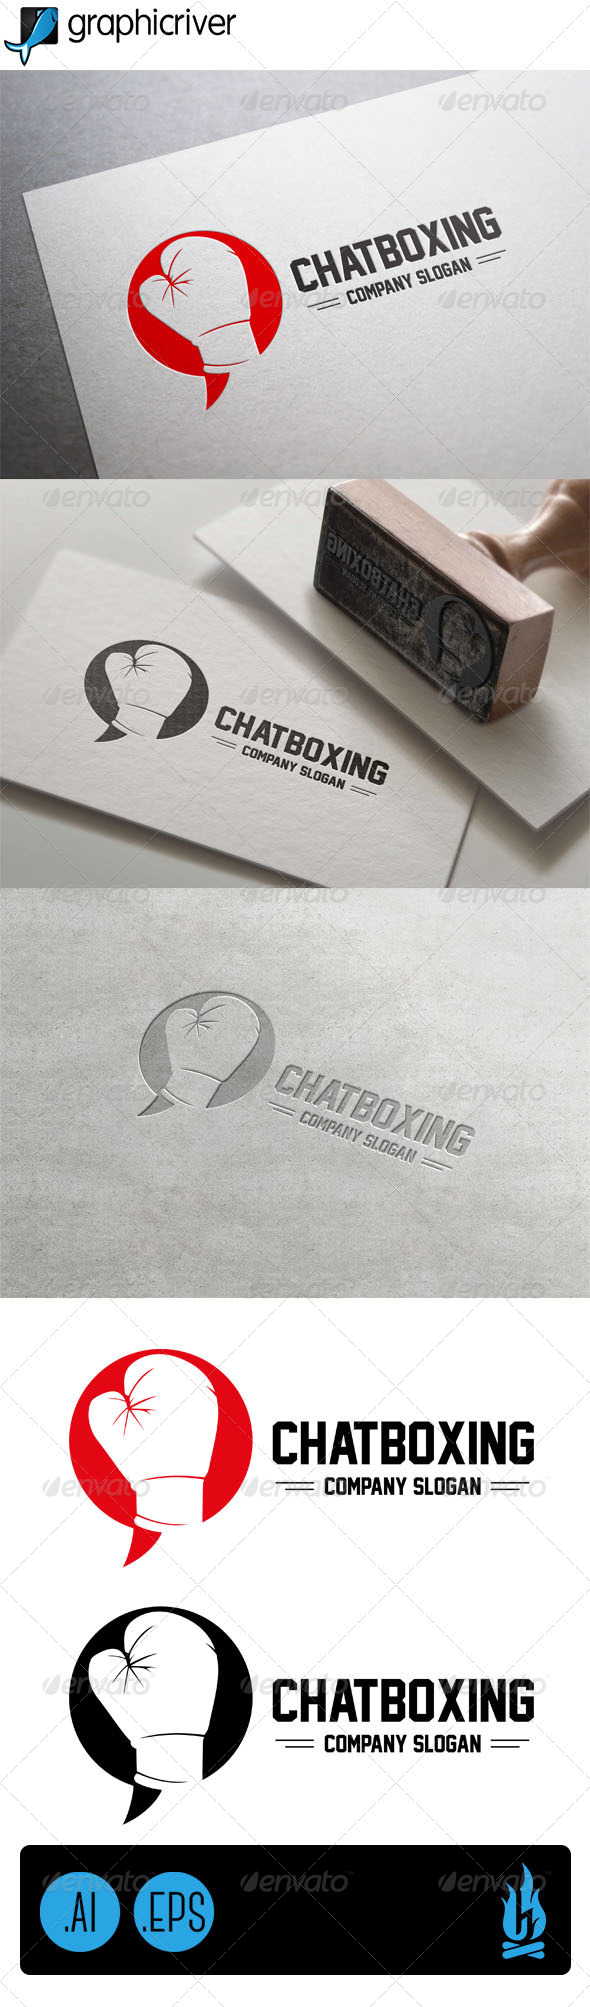 GraphicRiver Chatboxing Logo 7801084